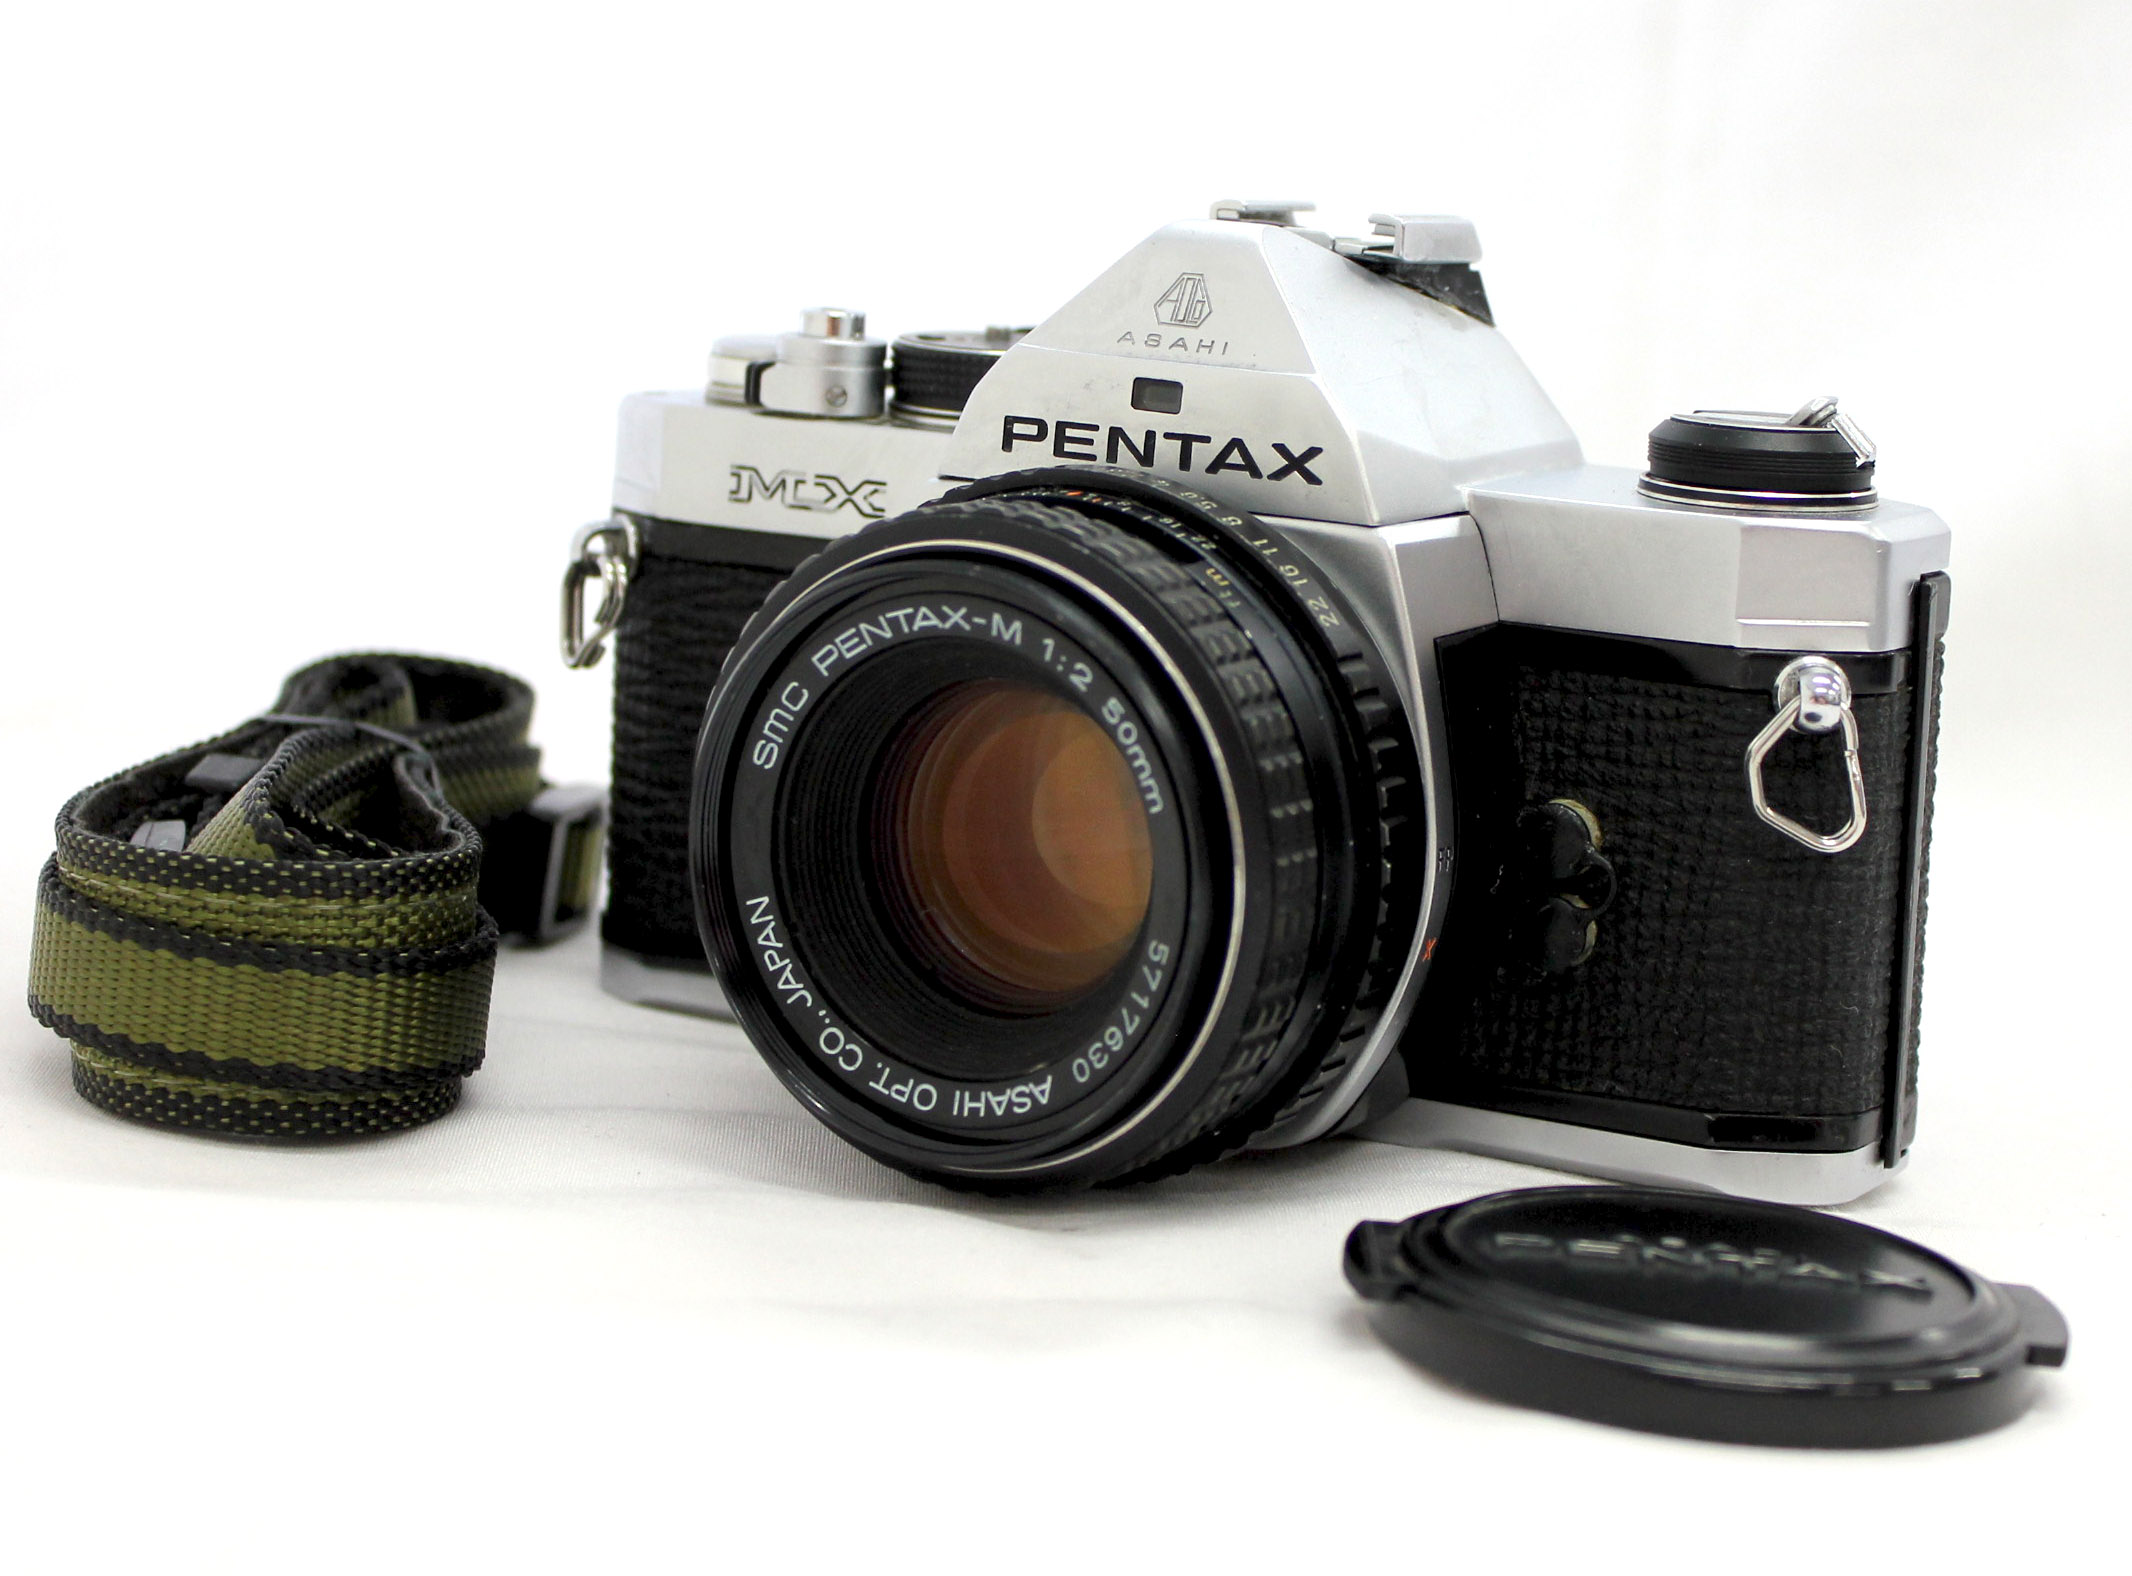 Japan Used Camera Shop | [Excellent++++] Pentax MX SLR 35mm Film Camera with SMC Pentax-M 50mm F/2 Lens from Japan